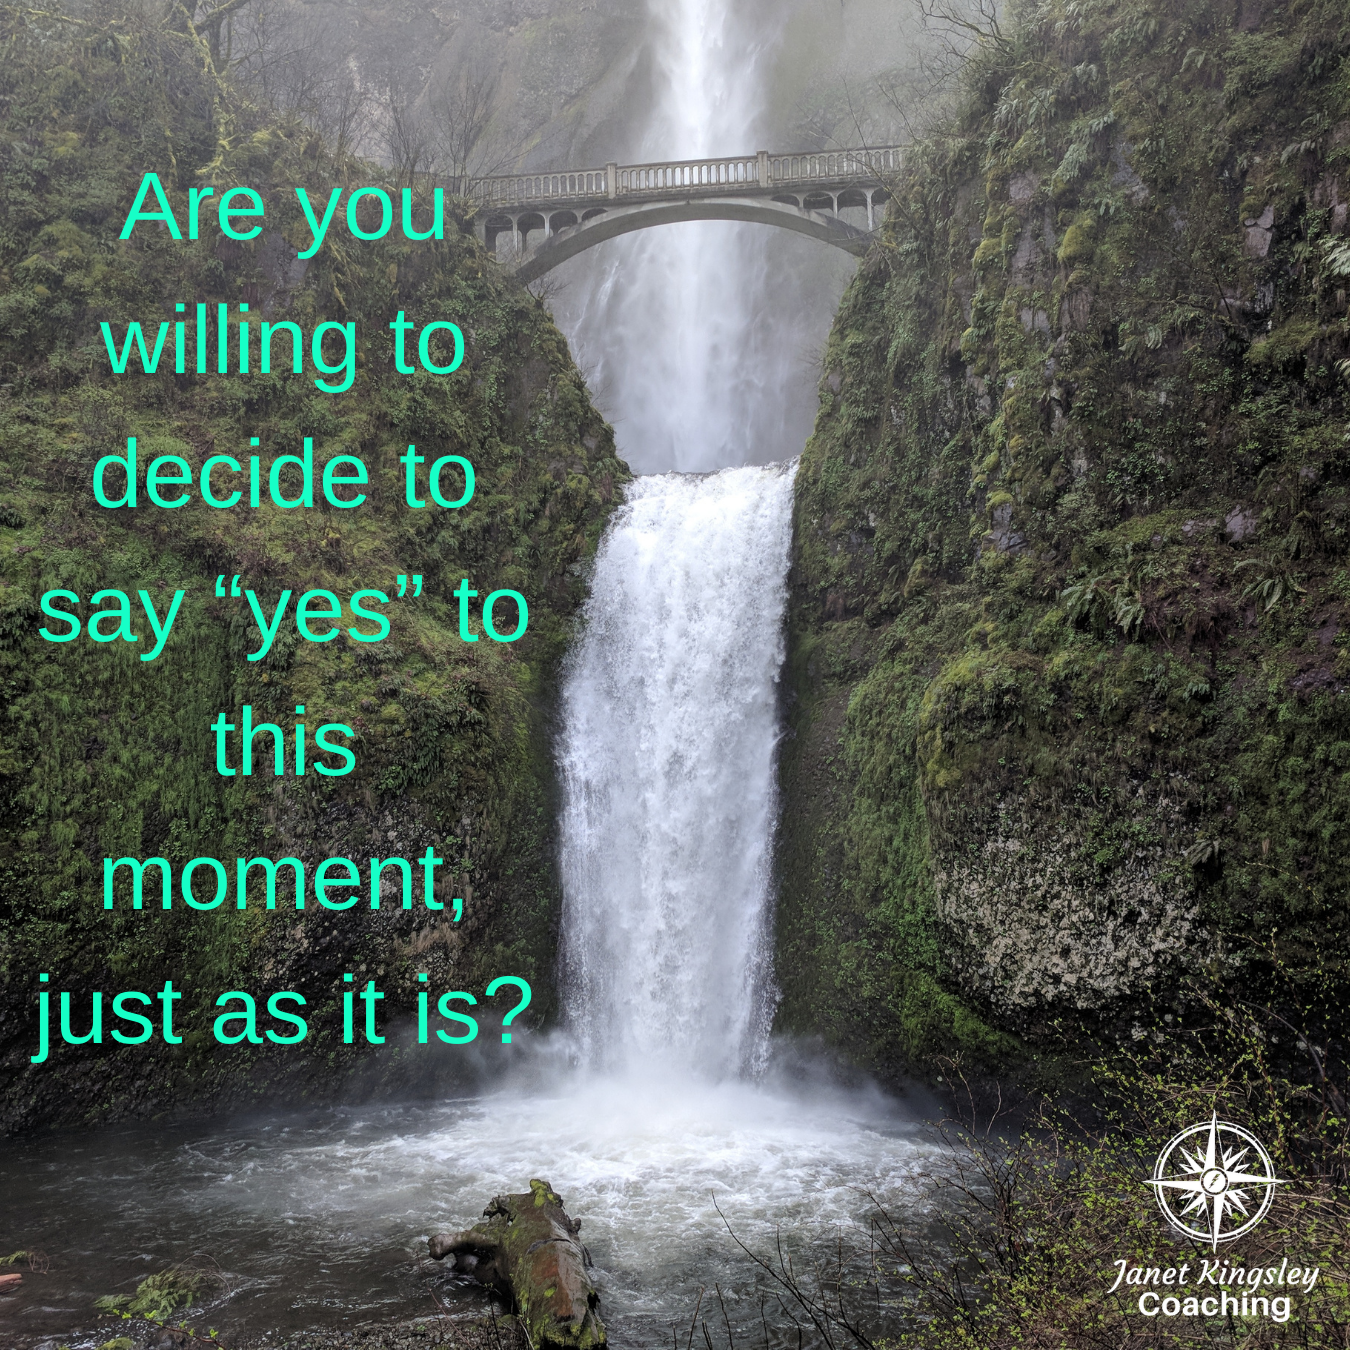 Say Yes in this moment